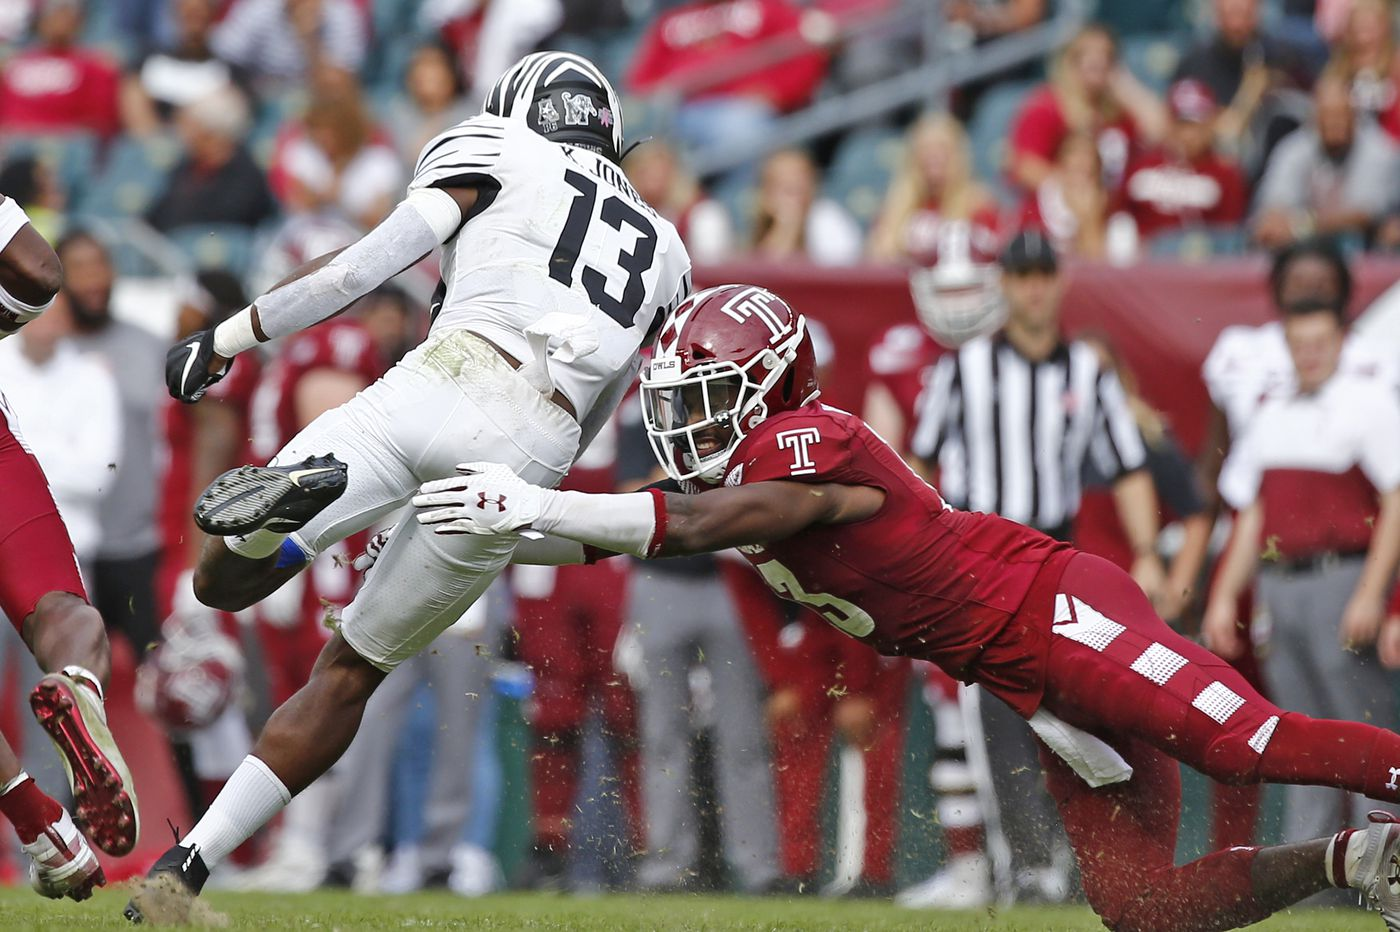 Temple will face North Carolina in the Military Bowl